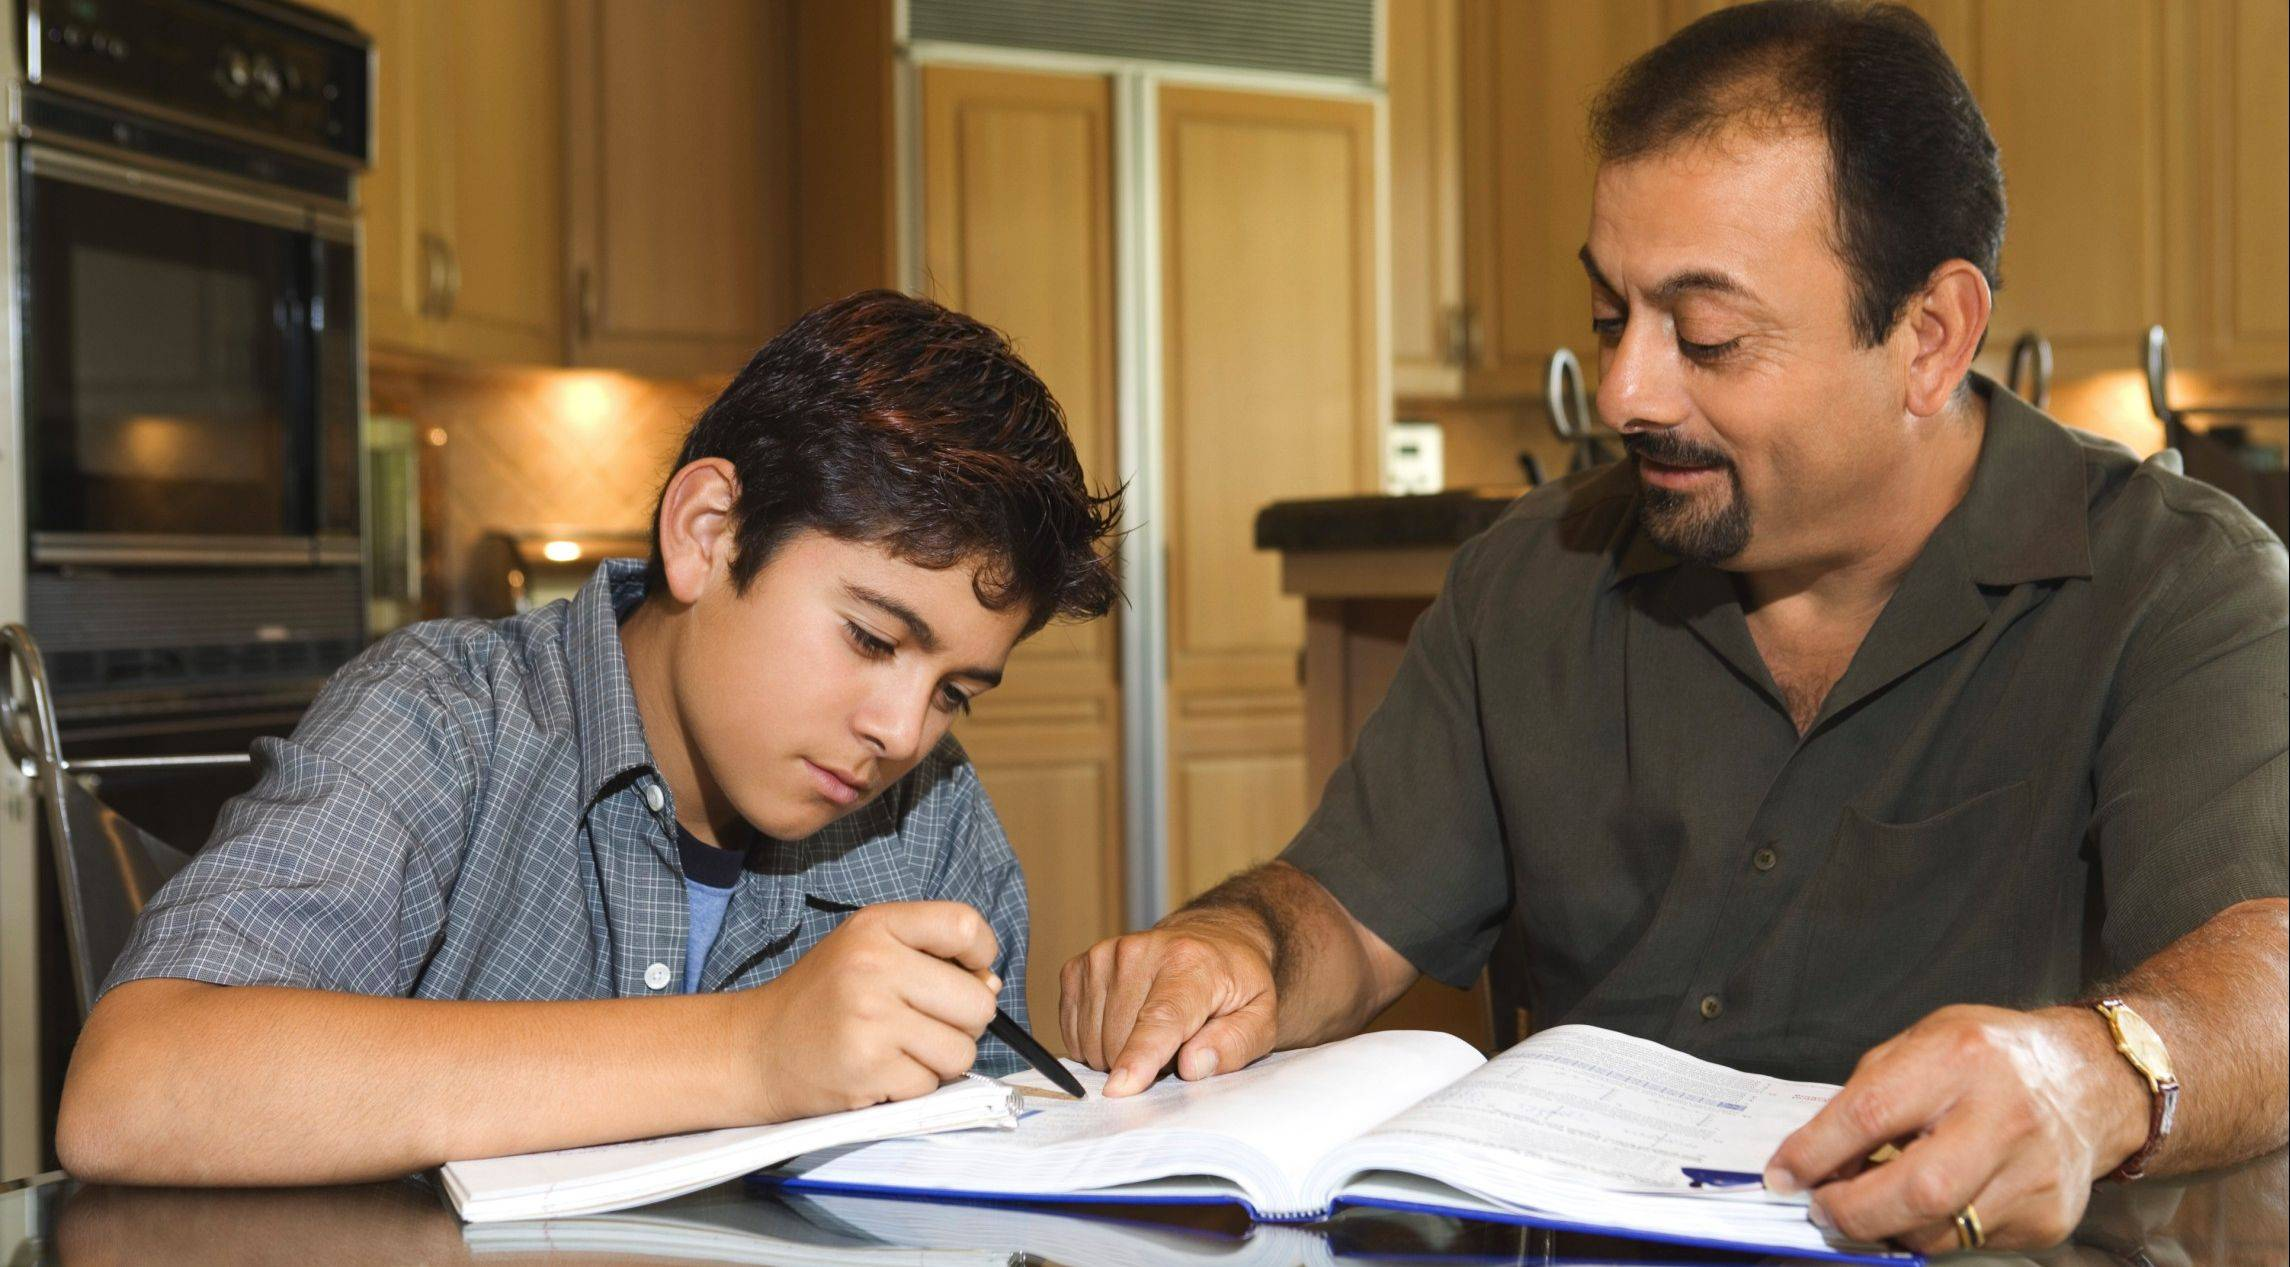 Studies consistently show that parental involvement in education is linked to higher student achievement.